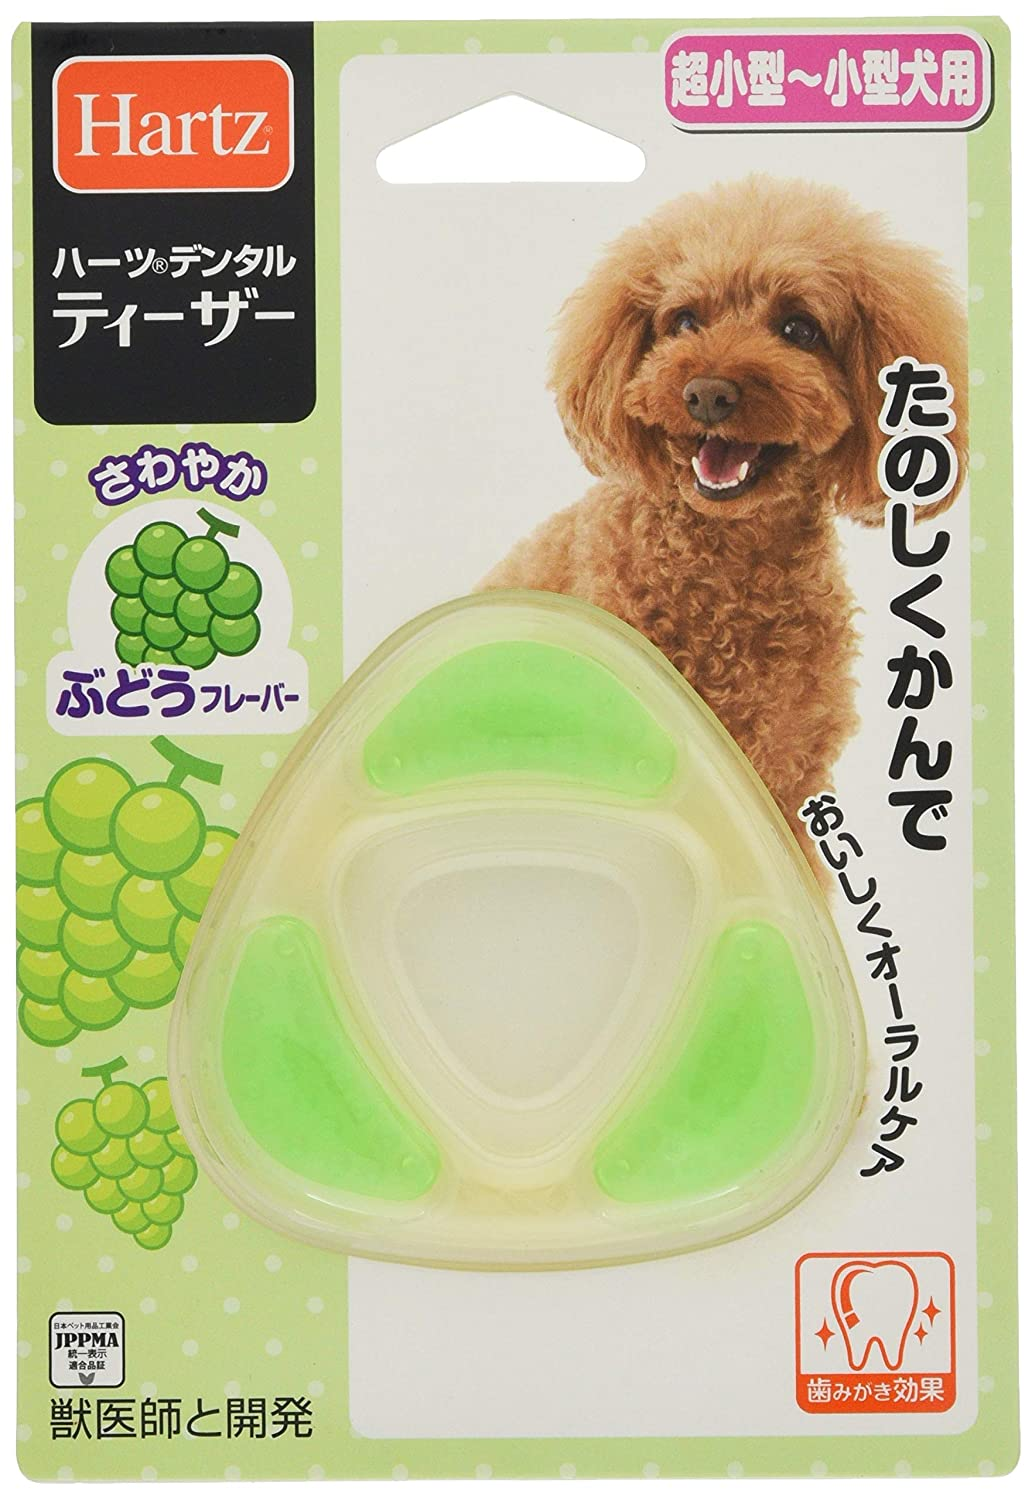 Fragrance S of Hearts (Hartz) Dental teaser ultra-small small dogs for grapes